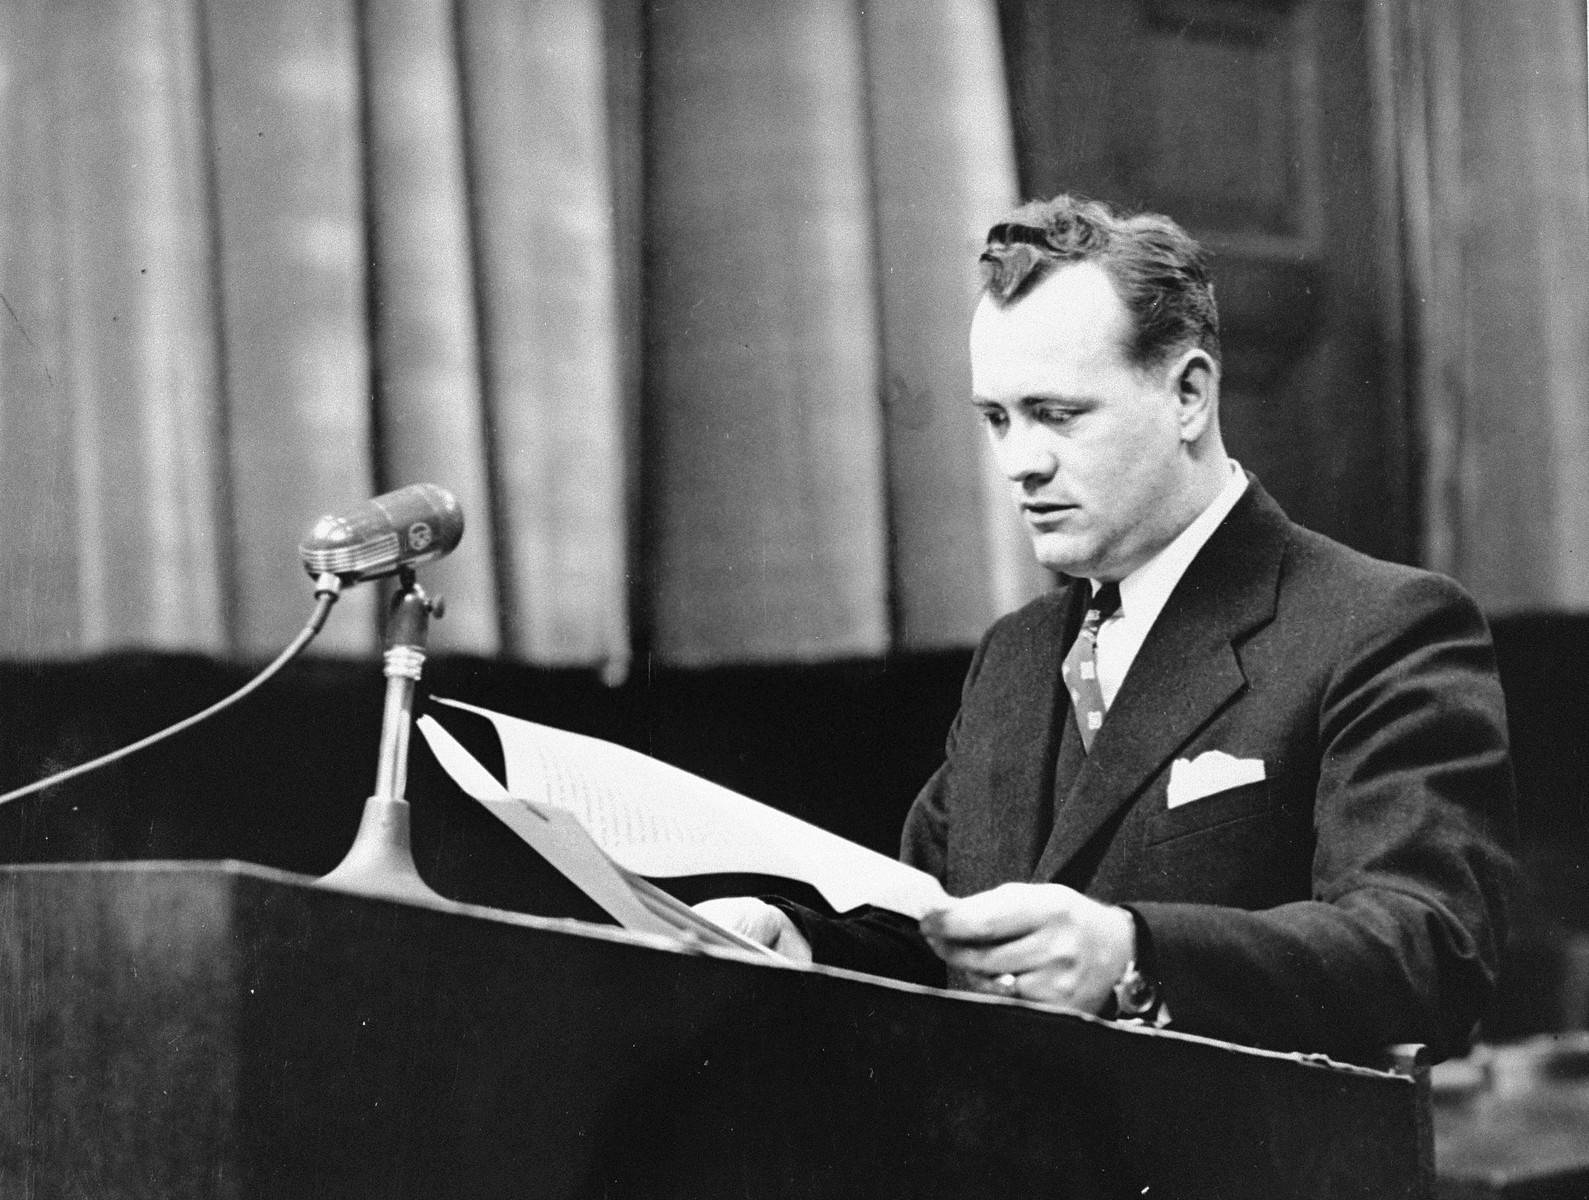 Alexander G. Hardy, Associate Counsel for the Prosecution, stands at the speaker's podium during a session of the Medical Case (Doctors') Trial in Nuremberg.